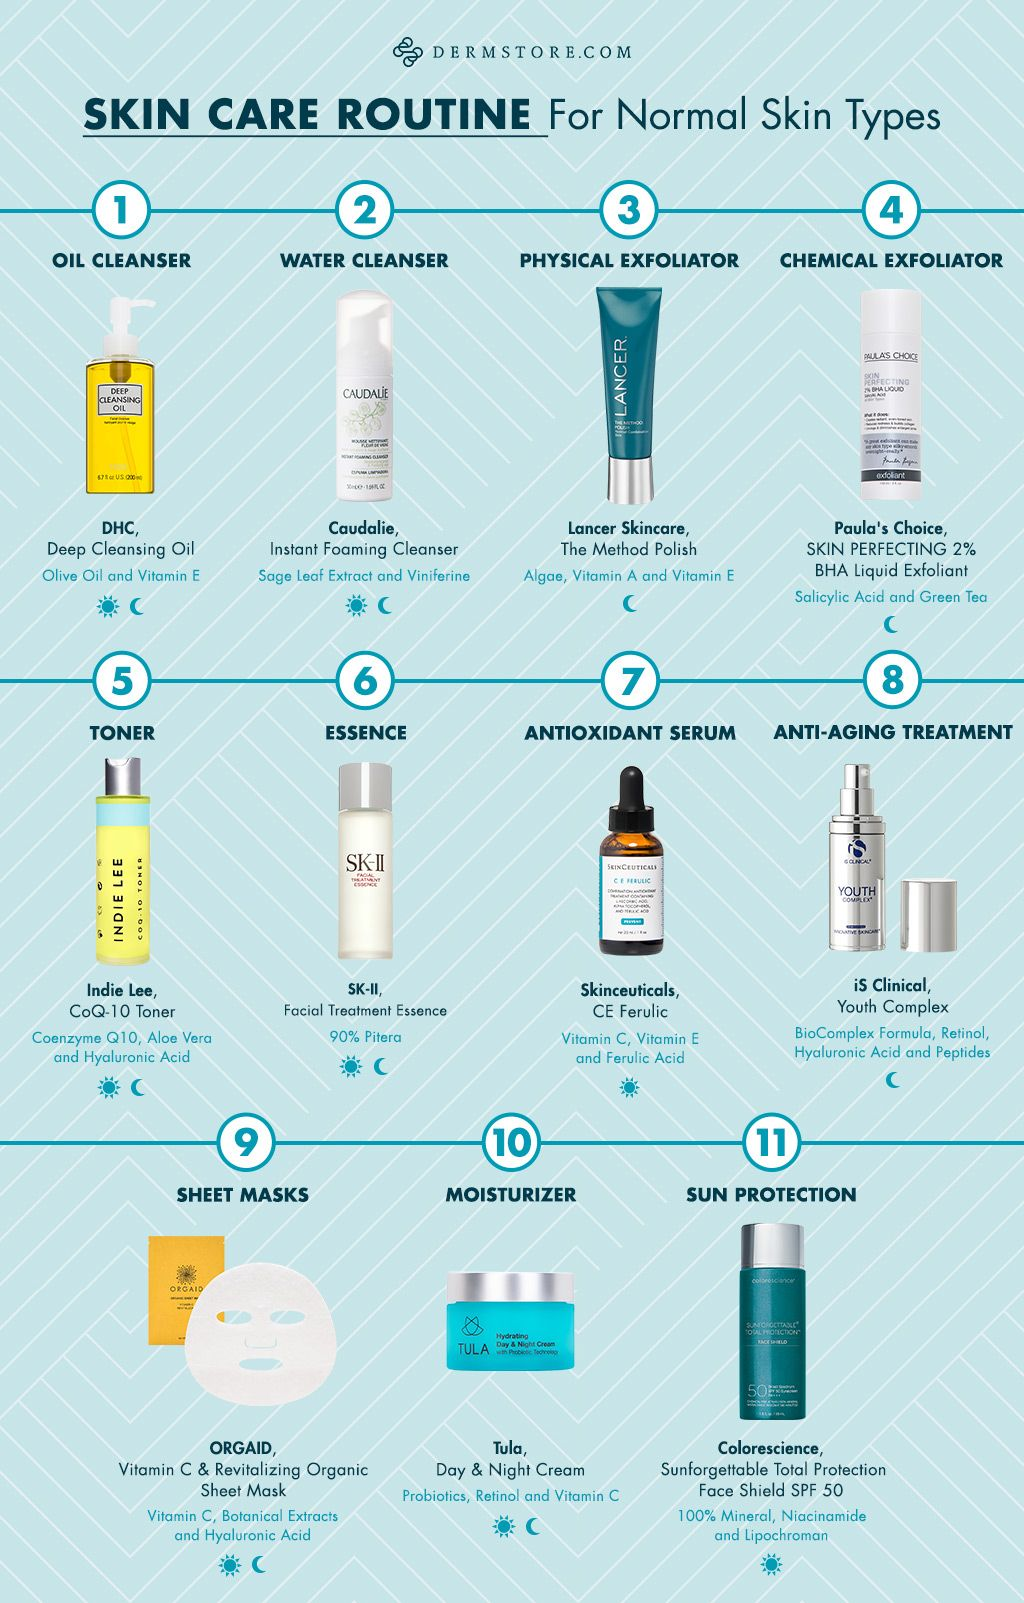 Finding The Perfect Skin Routine Is A Lifelong Journey Weather Changes Hormonal Changes And Even You Chang Perfect Skin Routine Skin Routine Normal Skin Type